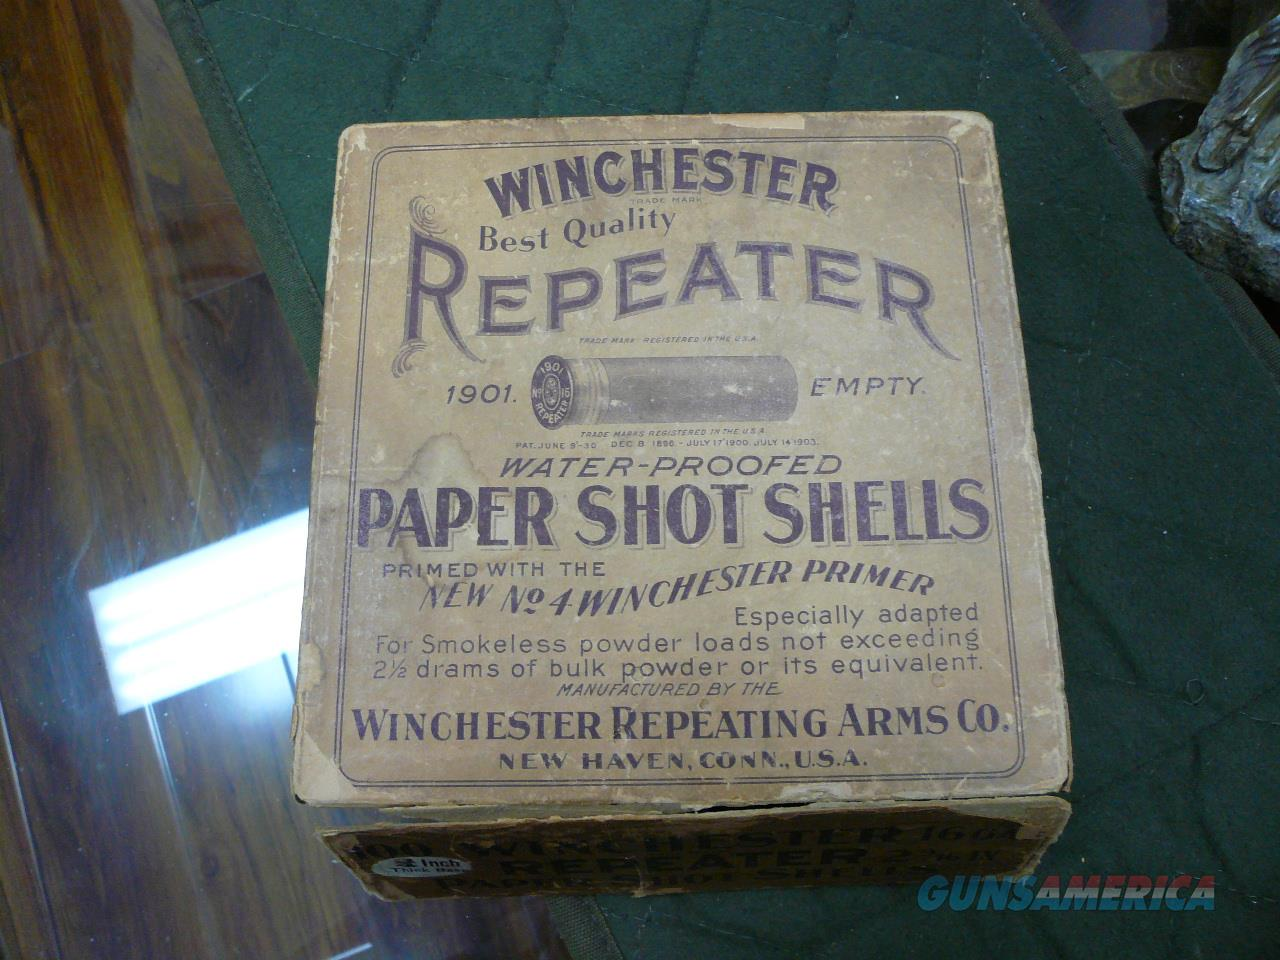 Vintage 1901 Winchester 100rd paper shot shells 16ga (empty)  Non-Guns > Collectible Cartridges